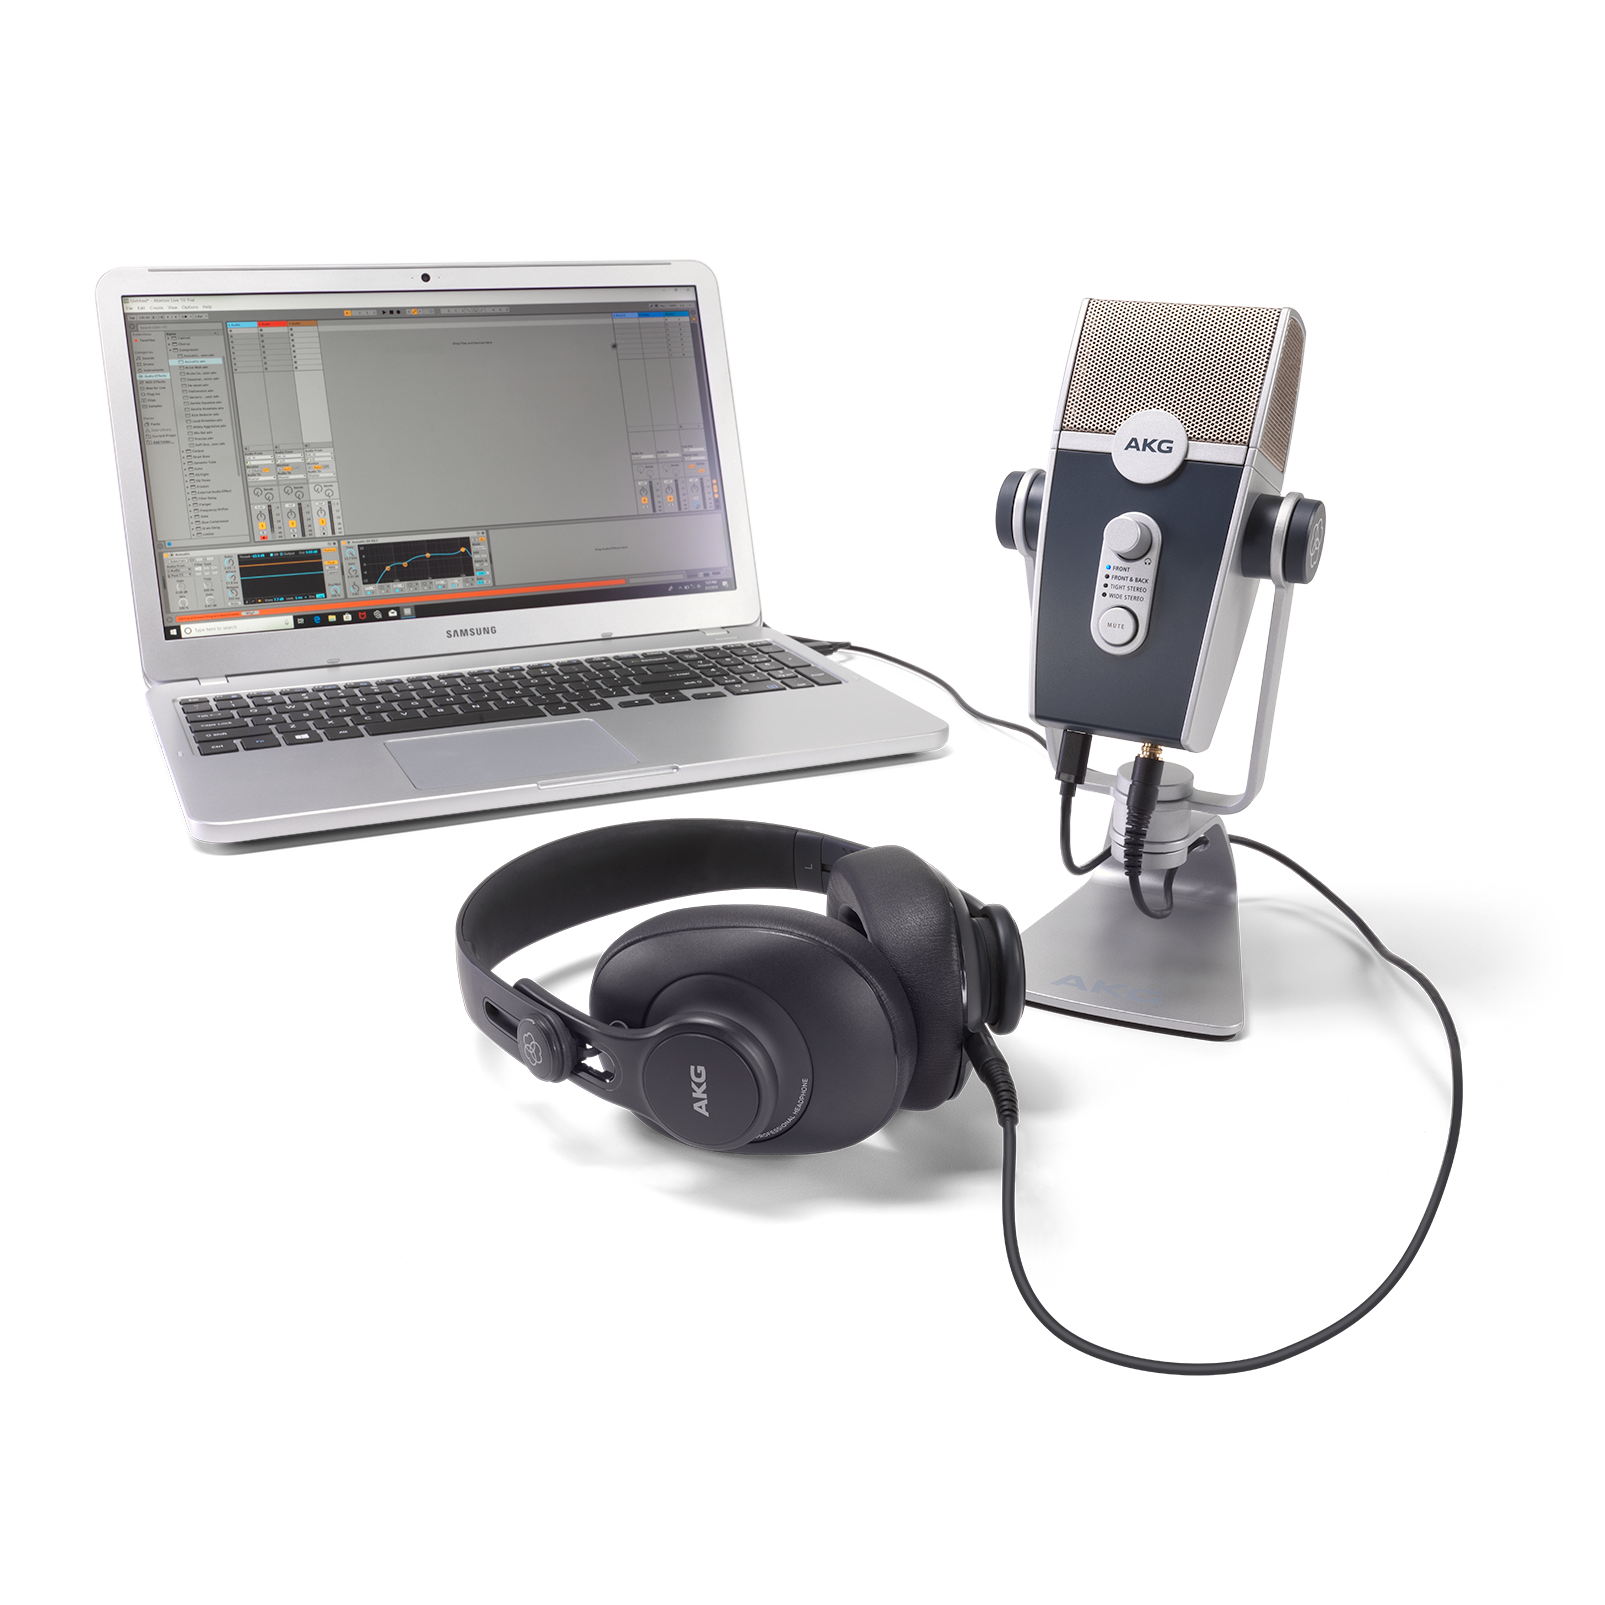 AKG Podcaster Essentials - Black / Gray - Audio Production Toolkit: AKG Lyra USB Microphone and AKG K371 Headphones - Detailshot 2